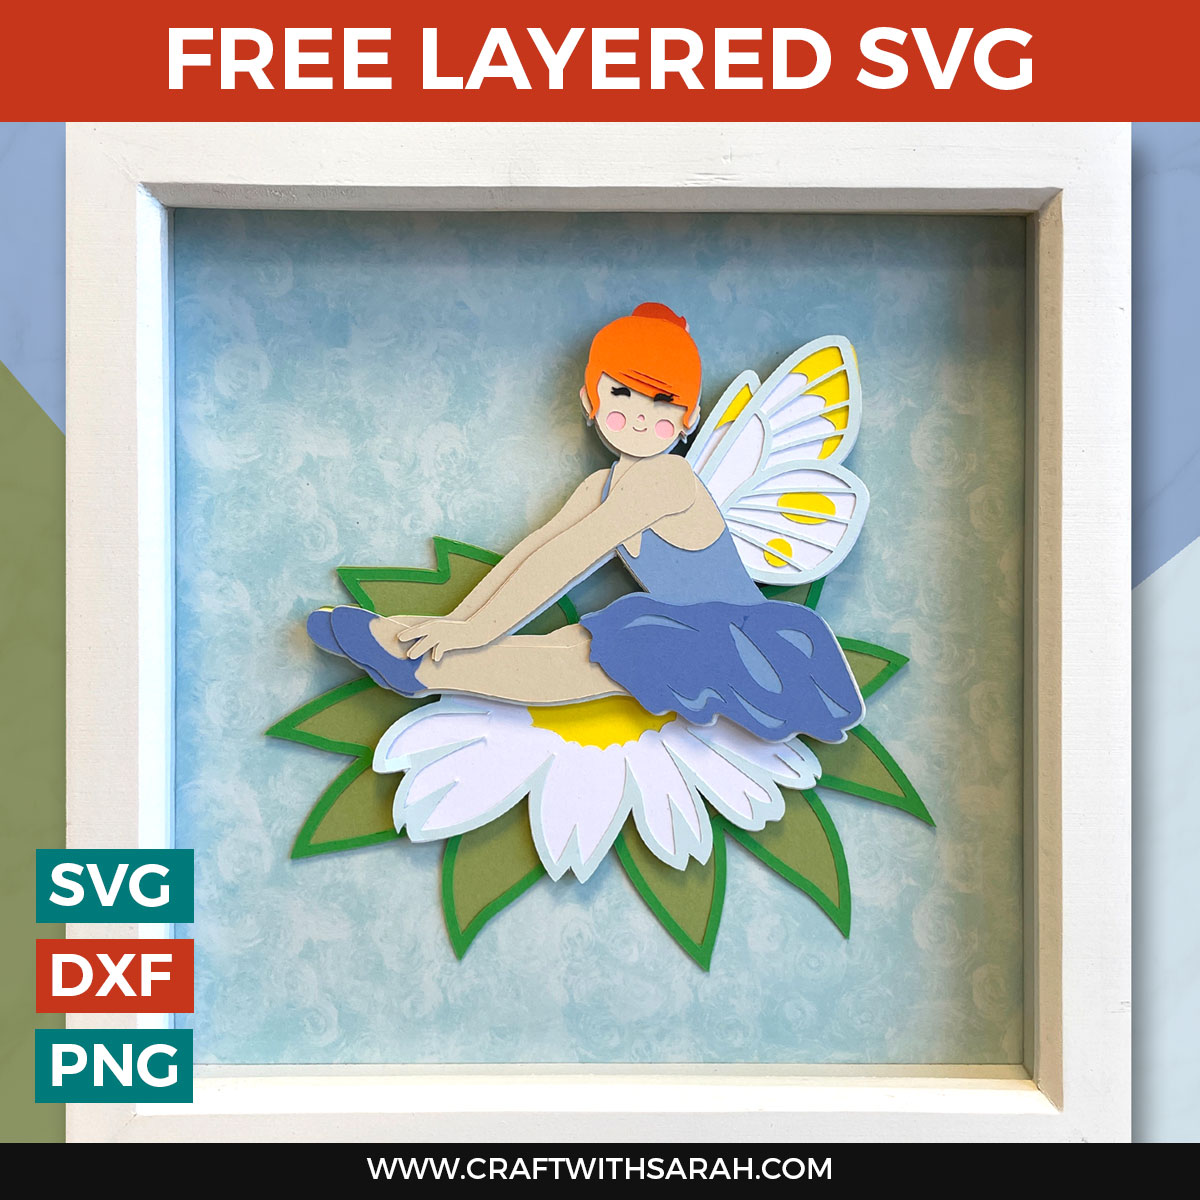 FREE Fairy SVG 🧚 DIY Fairy Paper Craft Project for Cricut